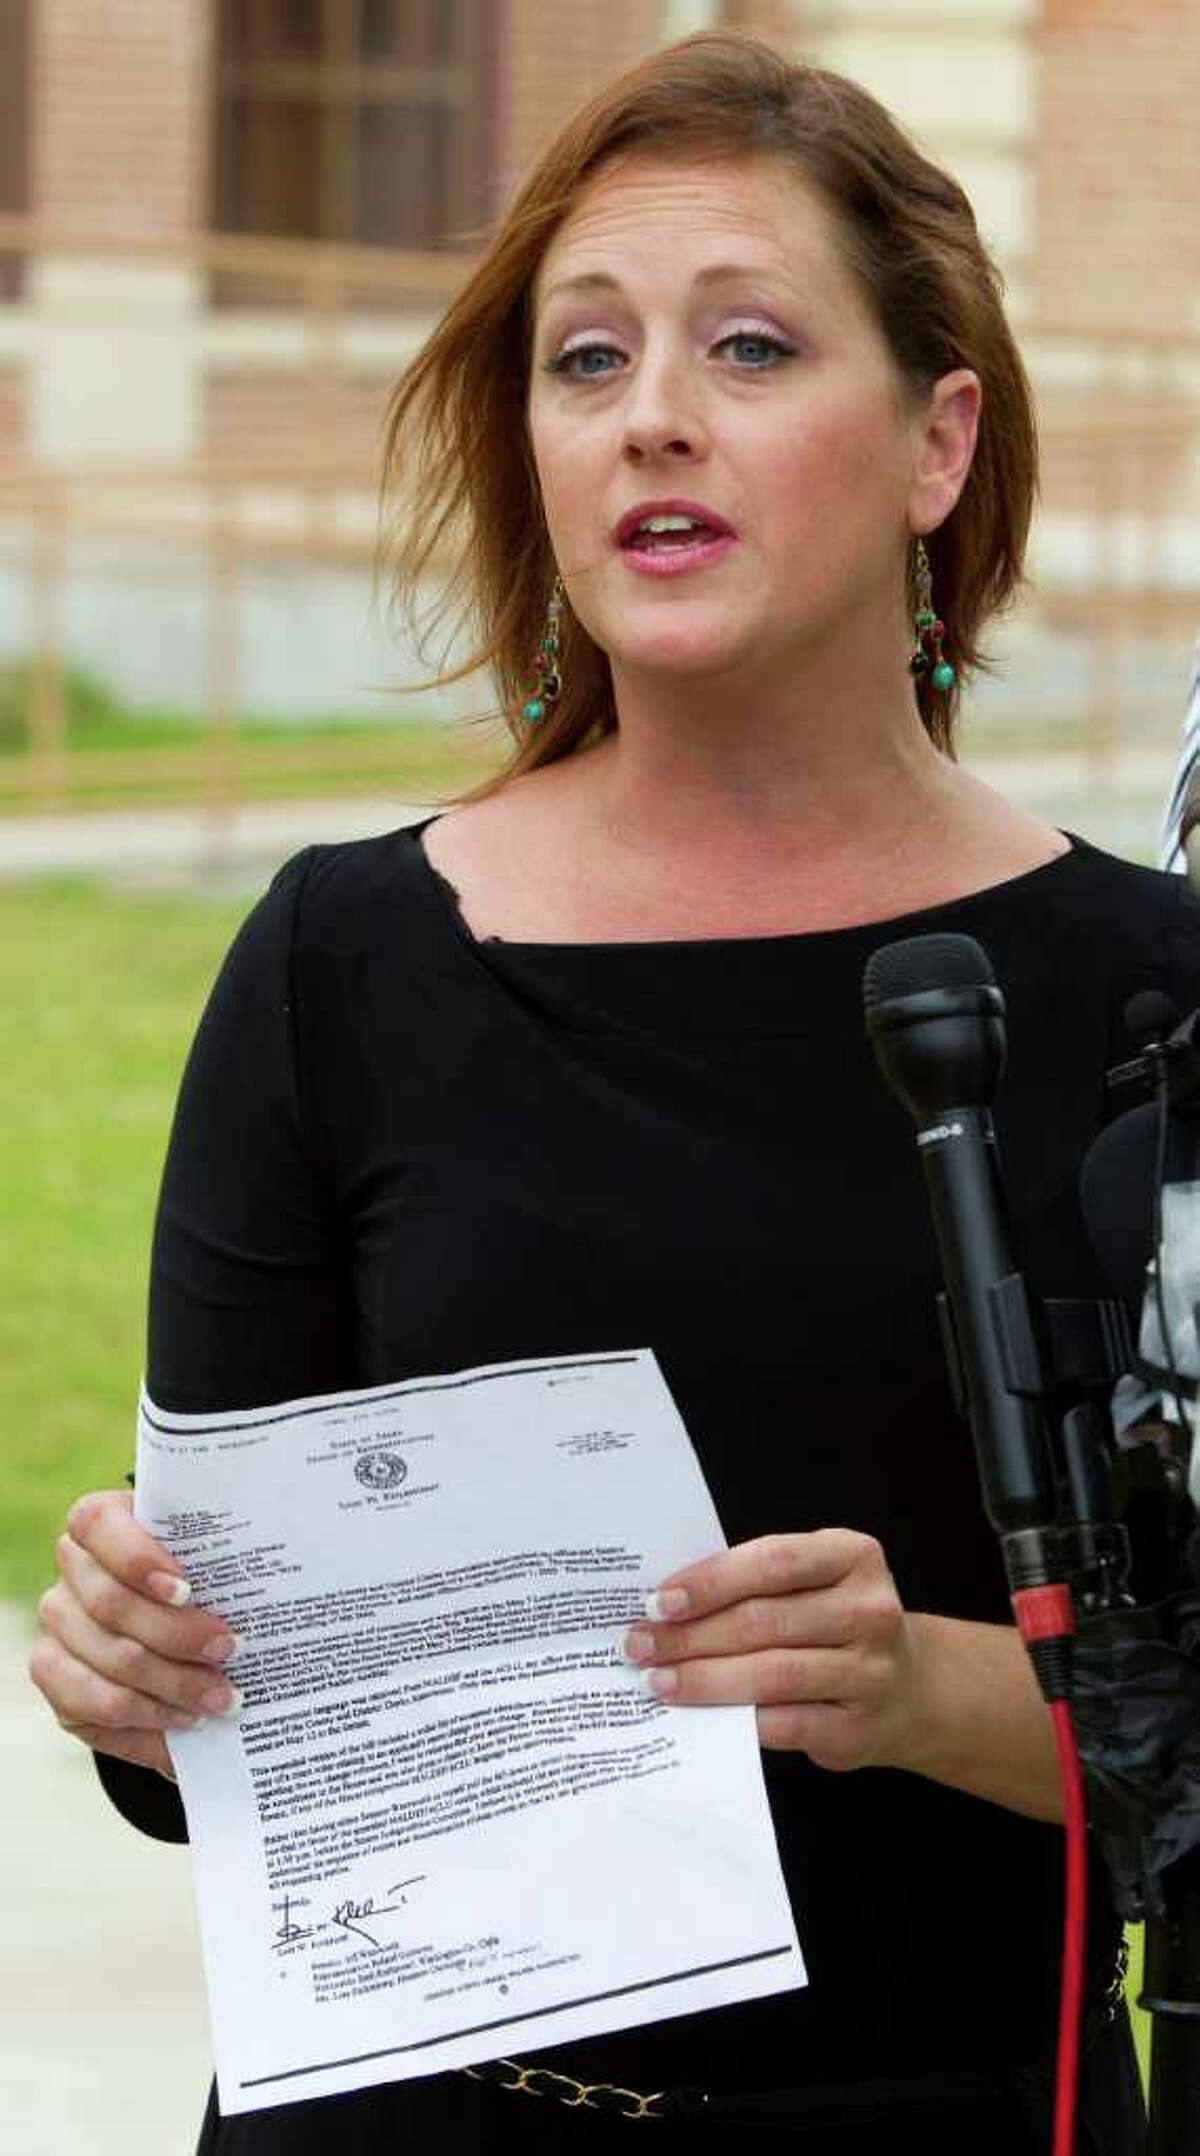 Nikki Araguz, the transgender widow of Wharton firefighter Thomas Araguz, killed in the line of duty in 2010, talks outside the Wharton County Courthouse during a break in the hearing to decide the fate of the firefighter's death benefits Friday, May 20, 2011, in Houston. A motion before the court by Heather Delgado,Thomas Araguz' ex-wife and mother of his two children, claims the marriage between Thomas and Nikki wasn't legal because Nikki was a man at the time. ( Brett Coomer / Houston Chronicle )